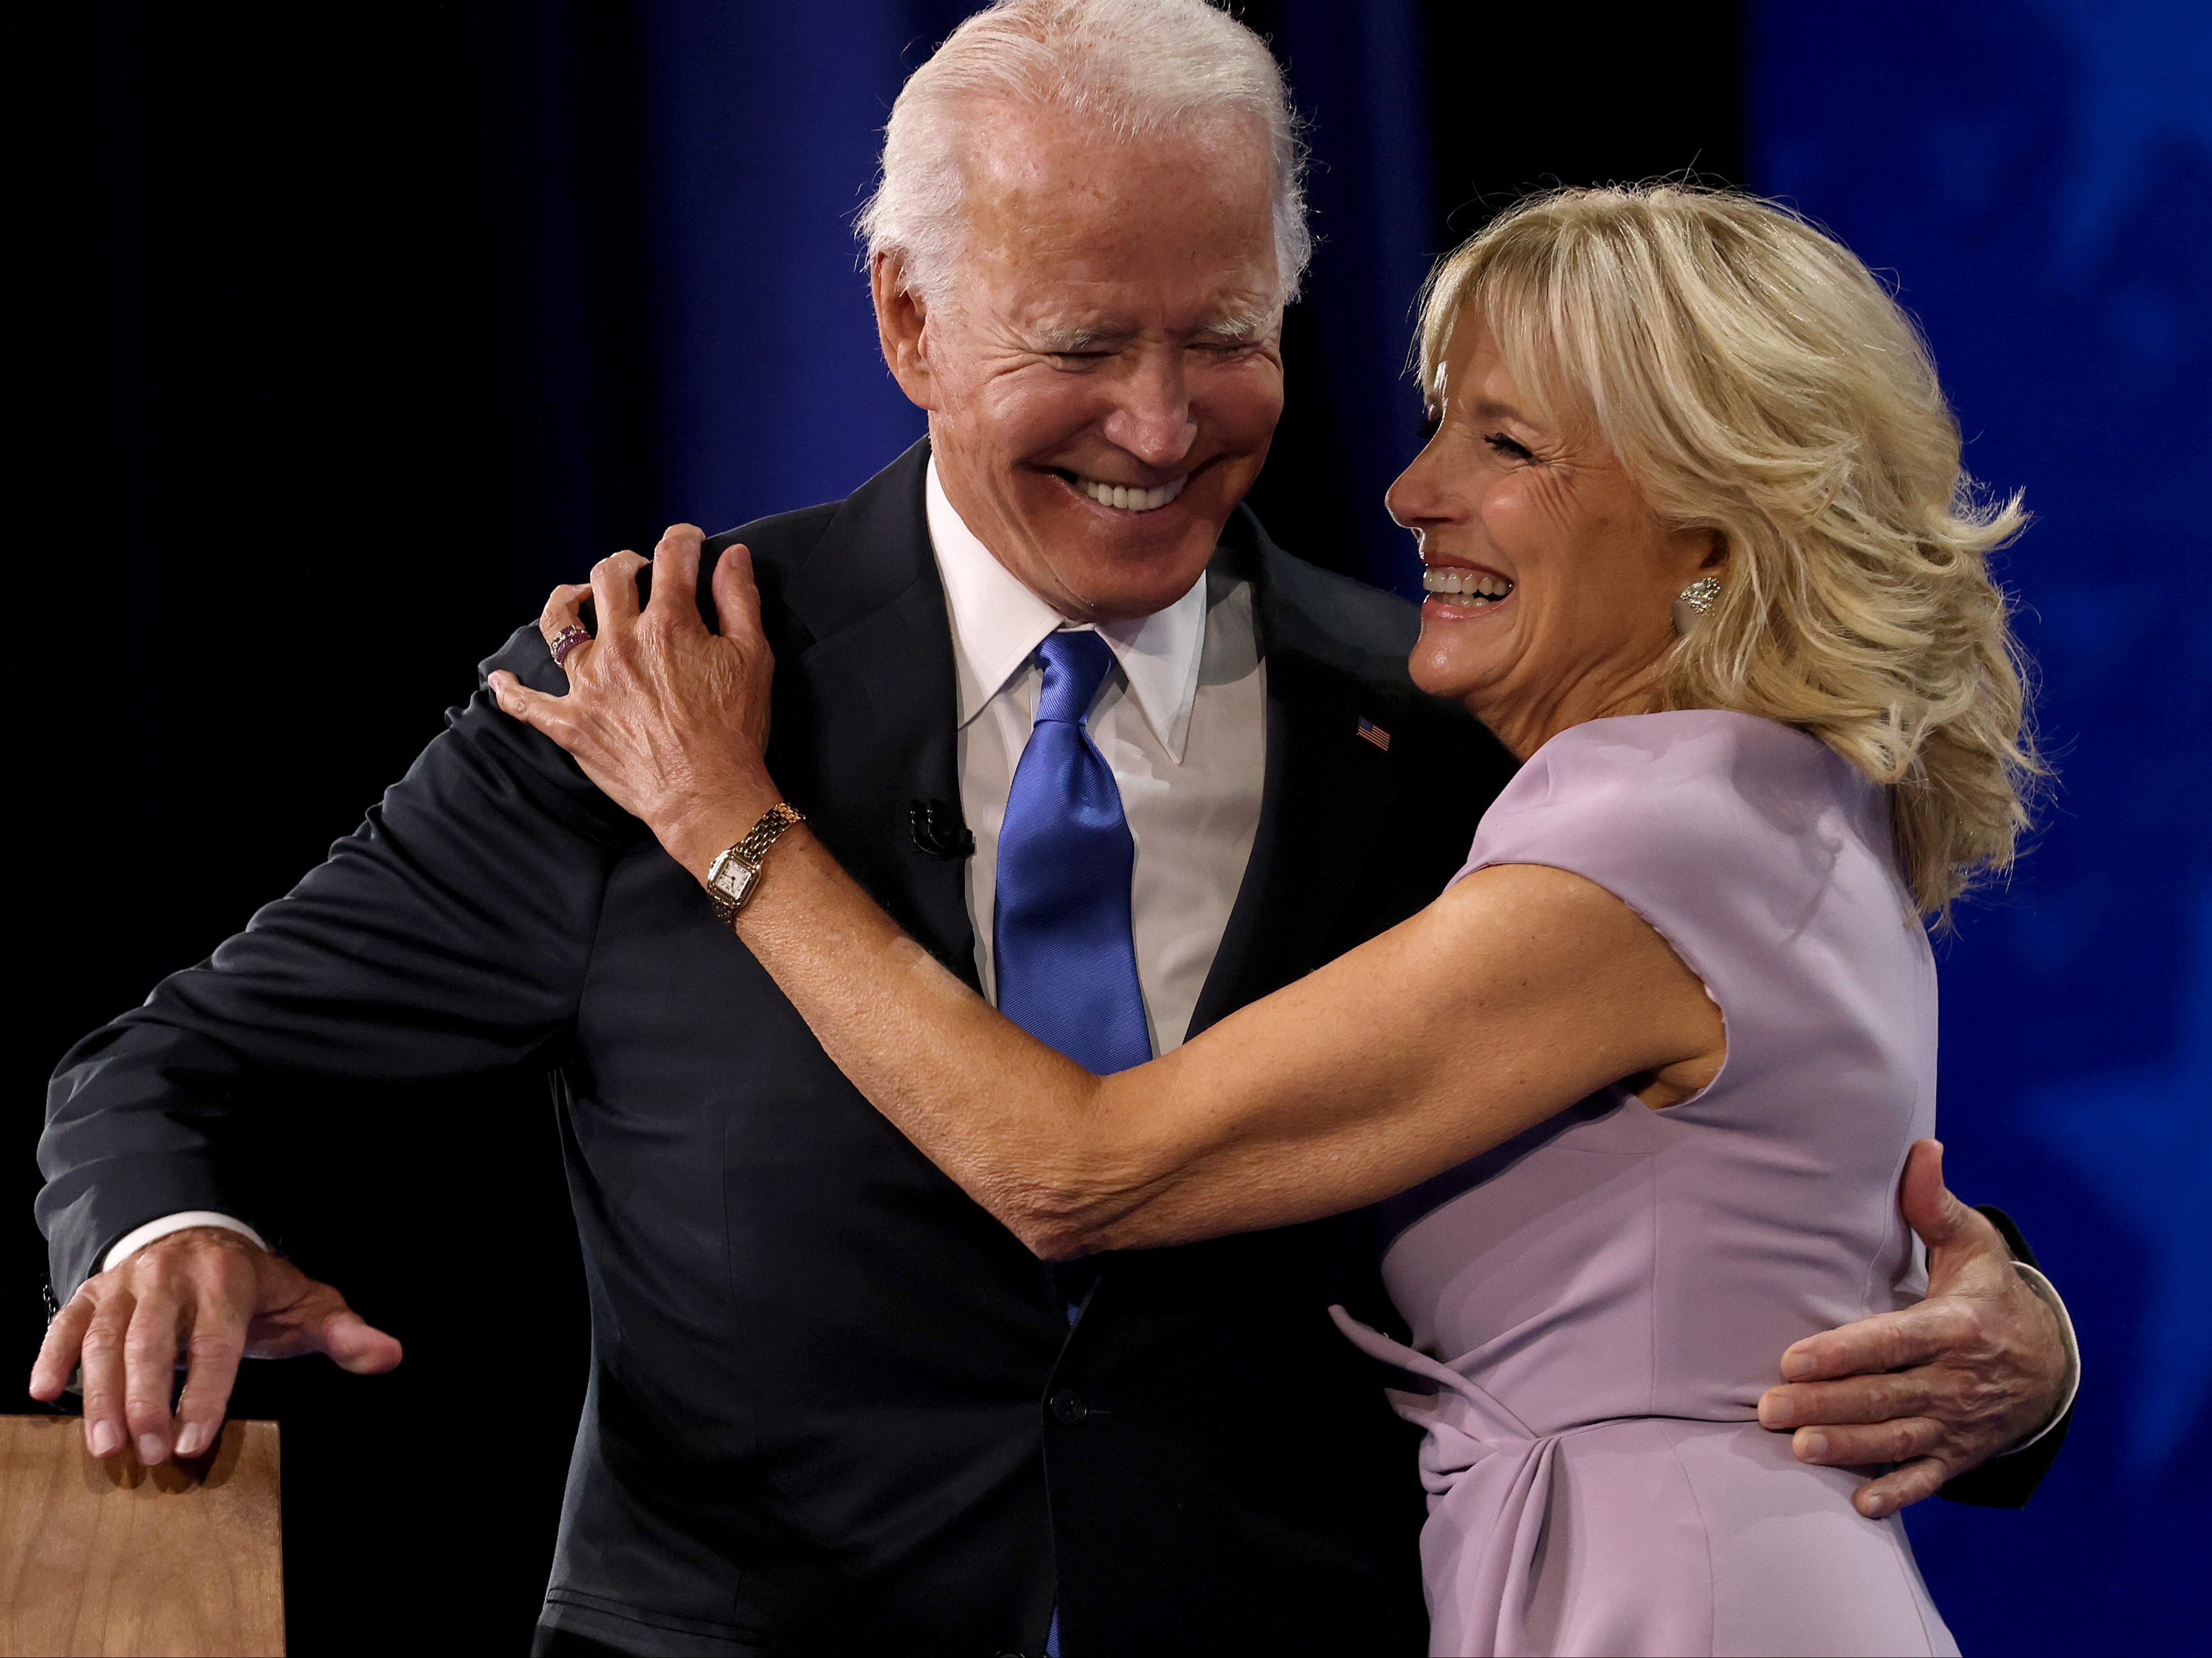 'We're filled with hope': Bidens open inauguration events with message of positivity after Capitol violence